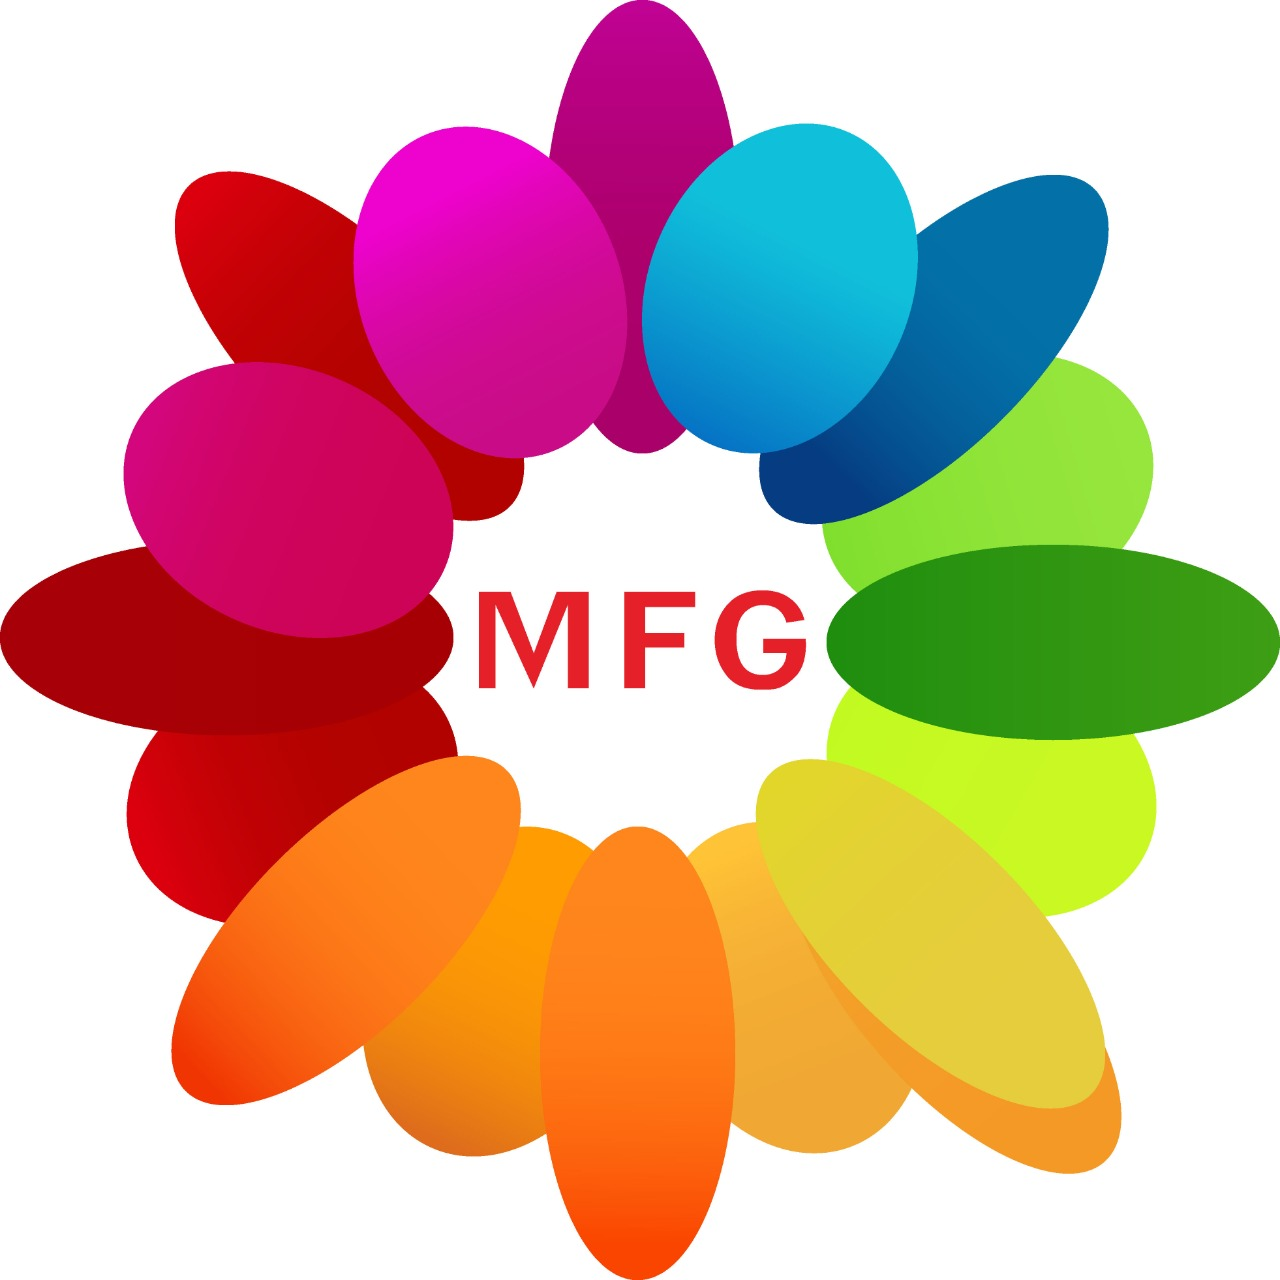 Bunch of 20 red and yellow carnations with 1 kg Eggless mix fruit premium quality cake with 1 feet height teddy bear